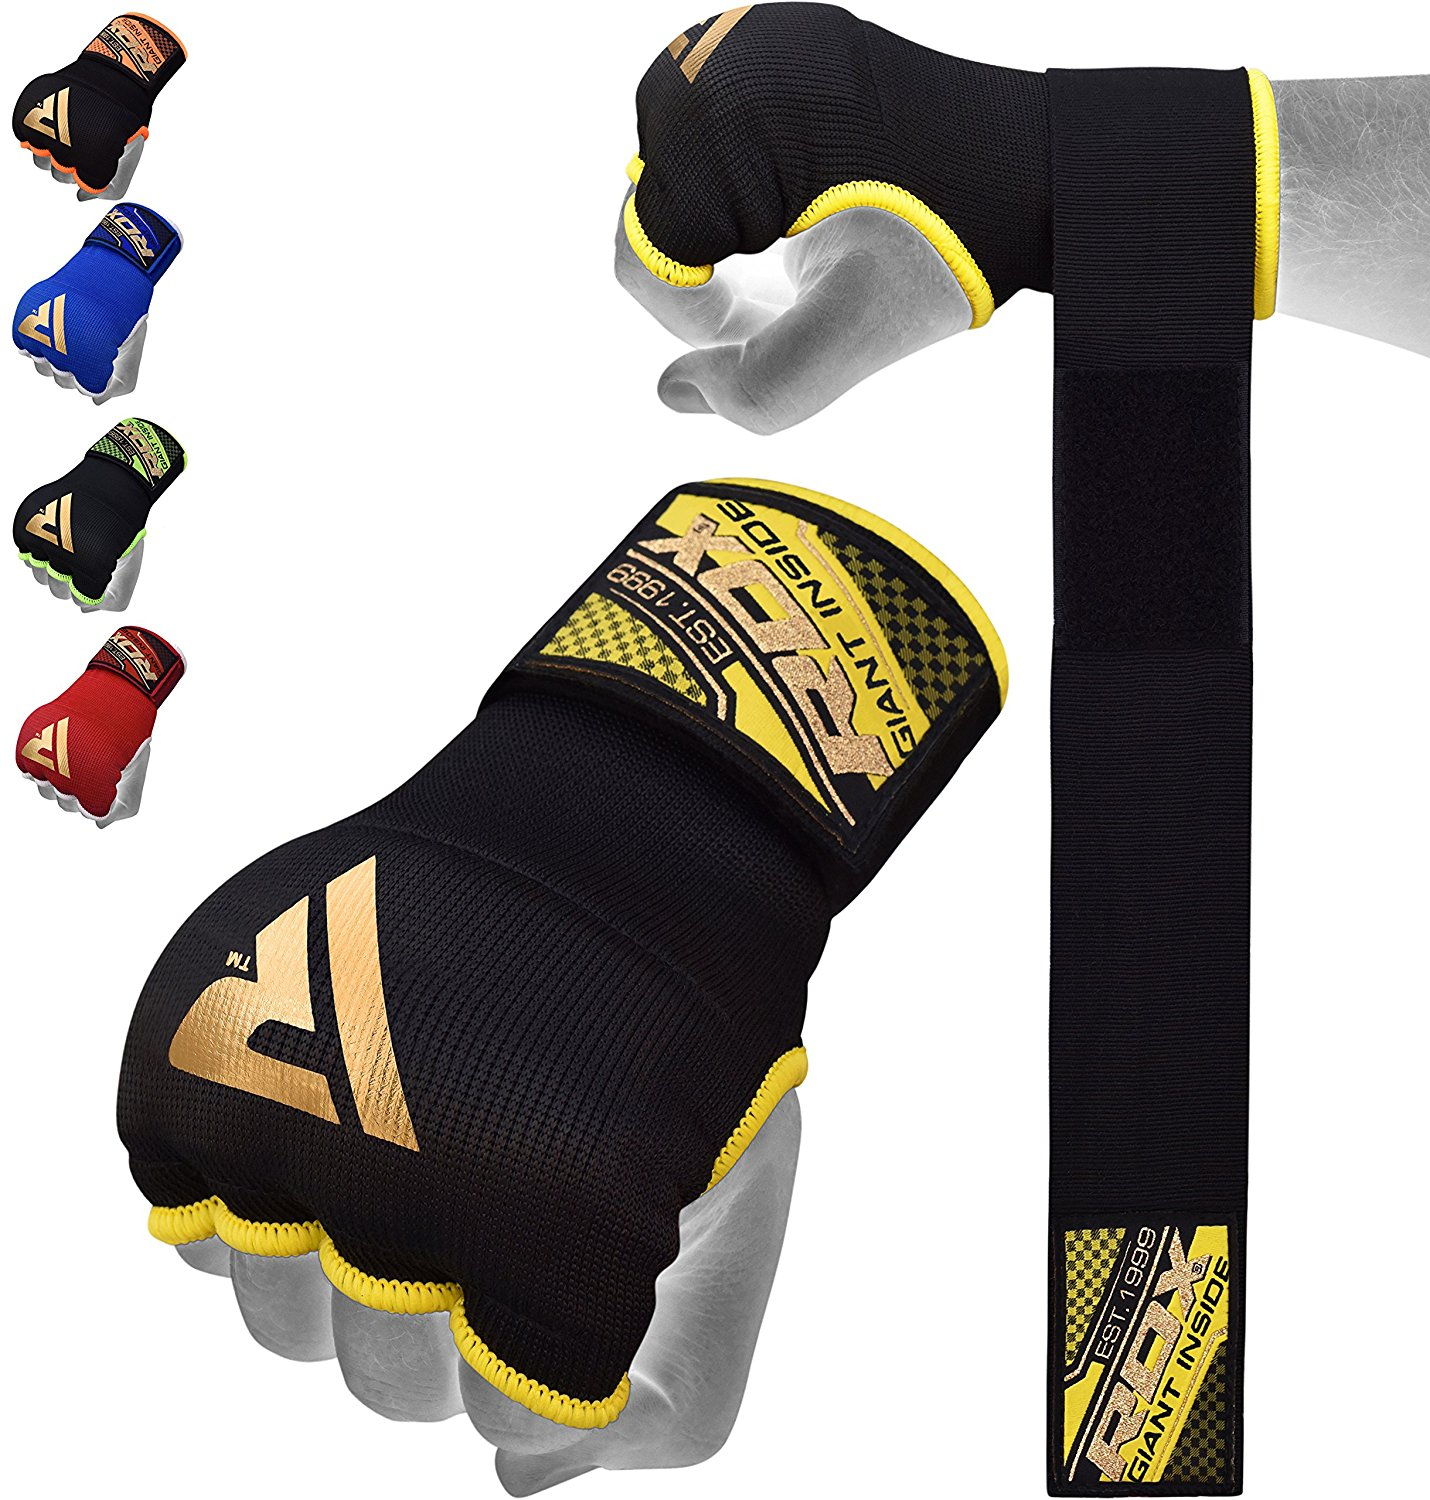 rdx hand wraps review